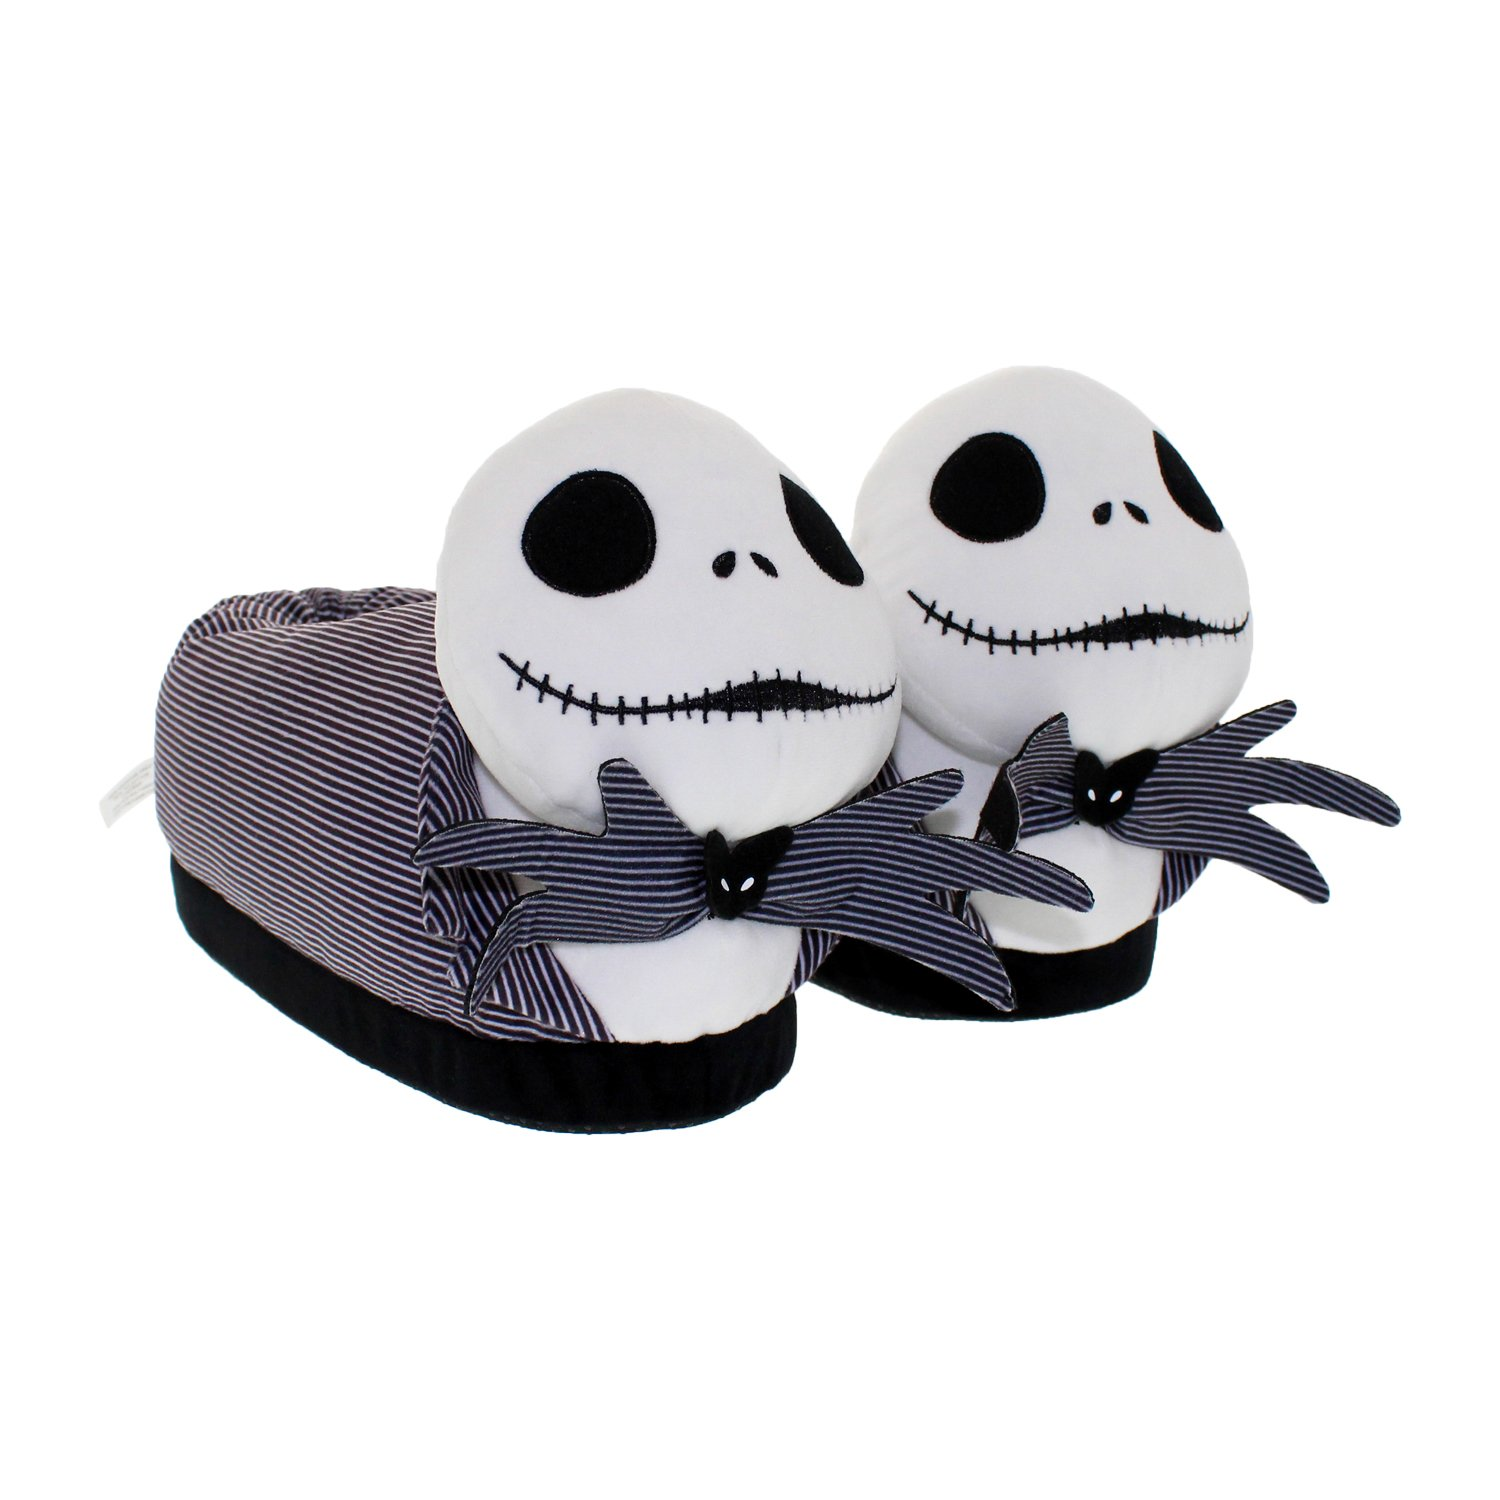 7022-3 - Disney Nightmare Before Christmas - Jack Skellington ...